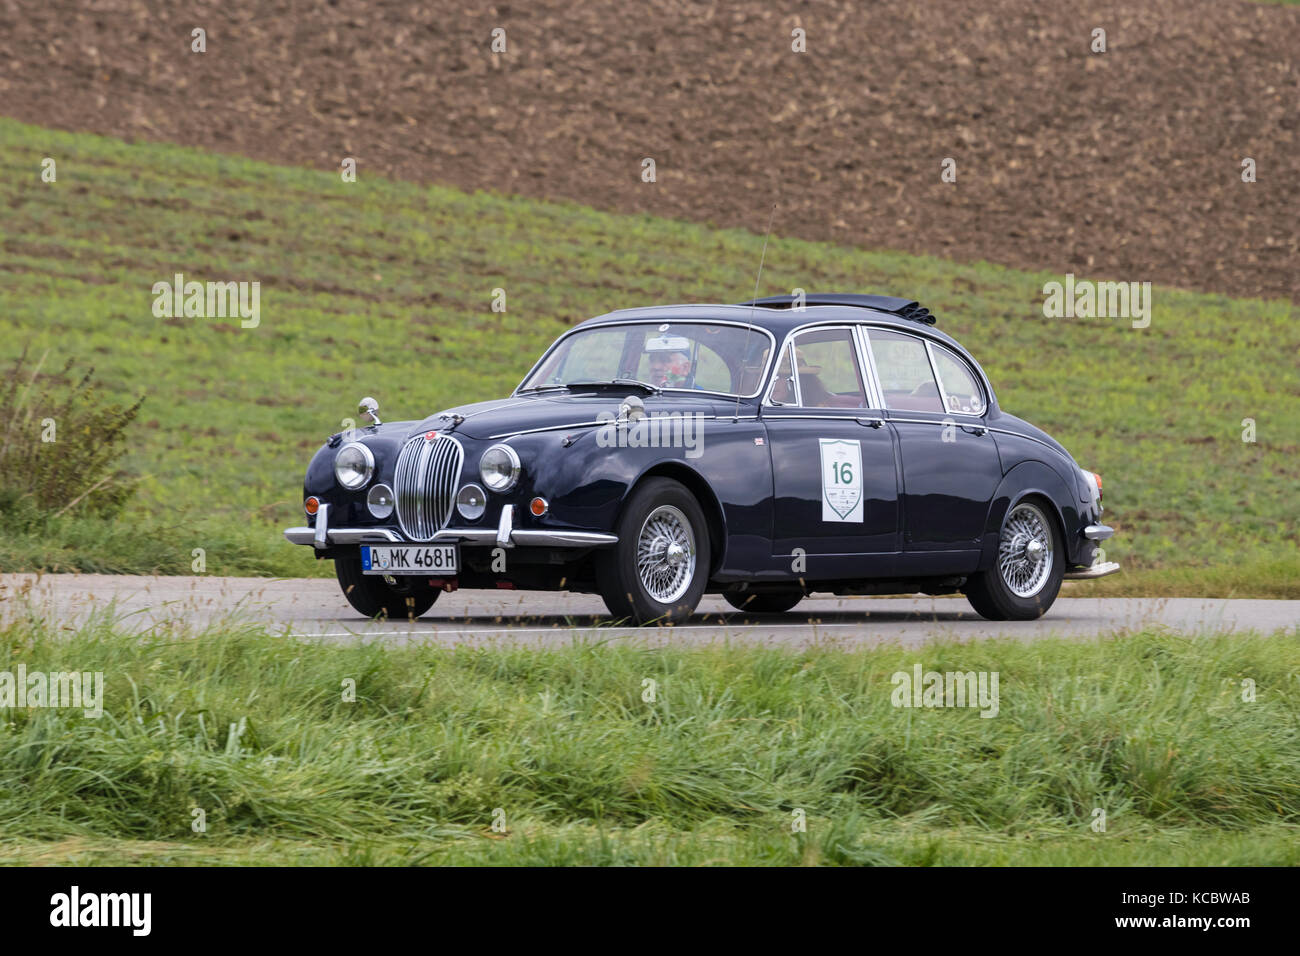 Augsburg, Germany   October 1, 2017: Jaguar 340 Oldtimer Car At The  Fuggerstadt Classic 2017 Oldtimer Rallye On October 1, 2017 In Augsburg,  Germany